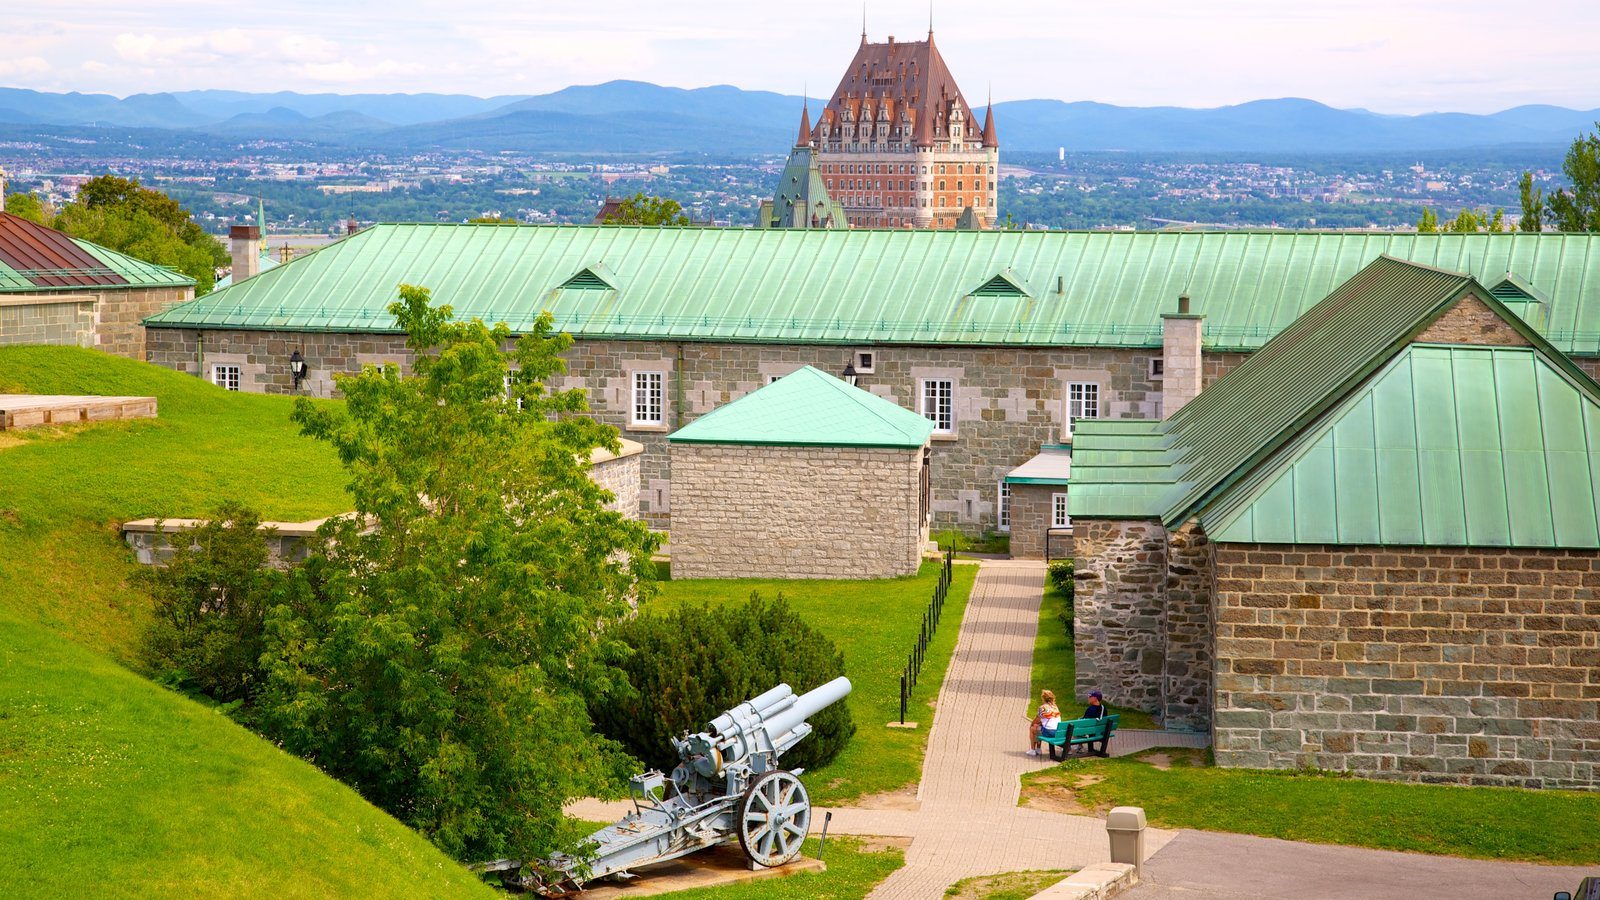 Citadelle of Quebec showing heritage elements, heritage architecture and military items